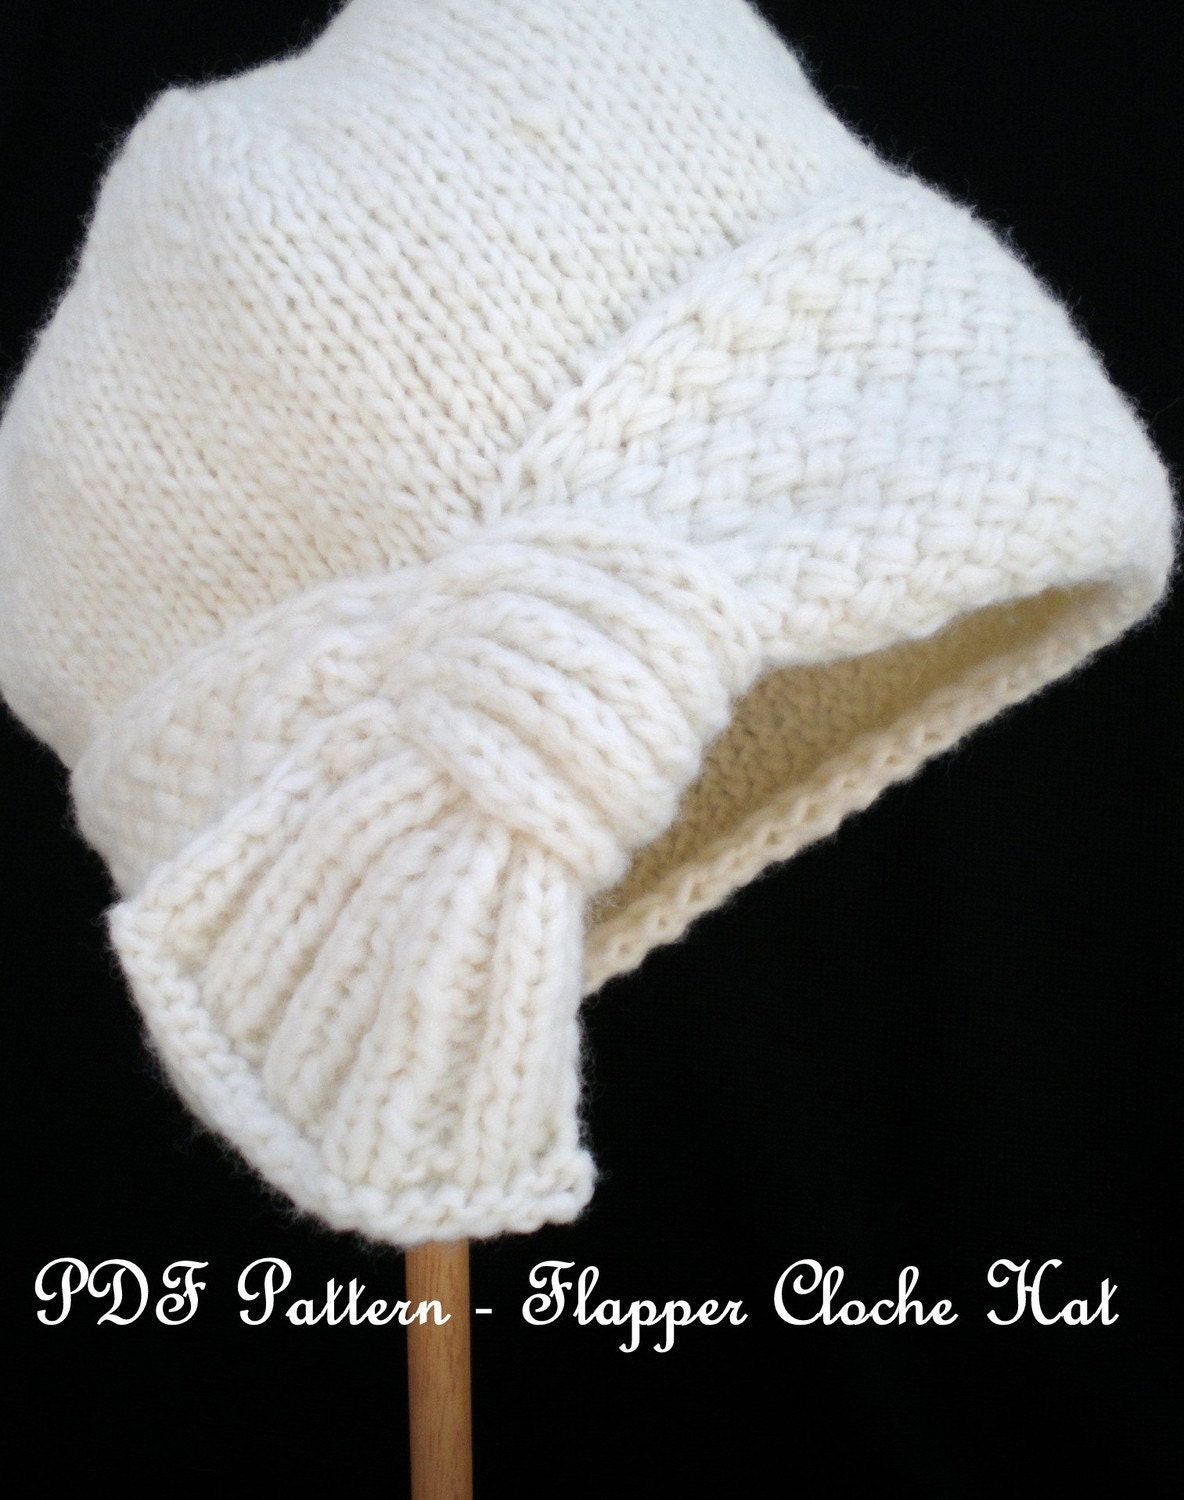 Cloche Hat Pattern Knitting : PDF Knitting Pattern Flapper Cloche Hat